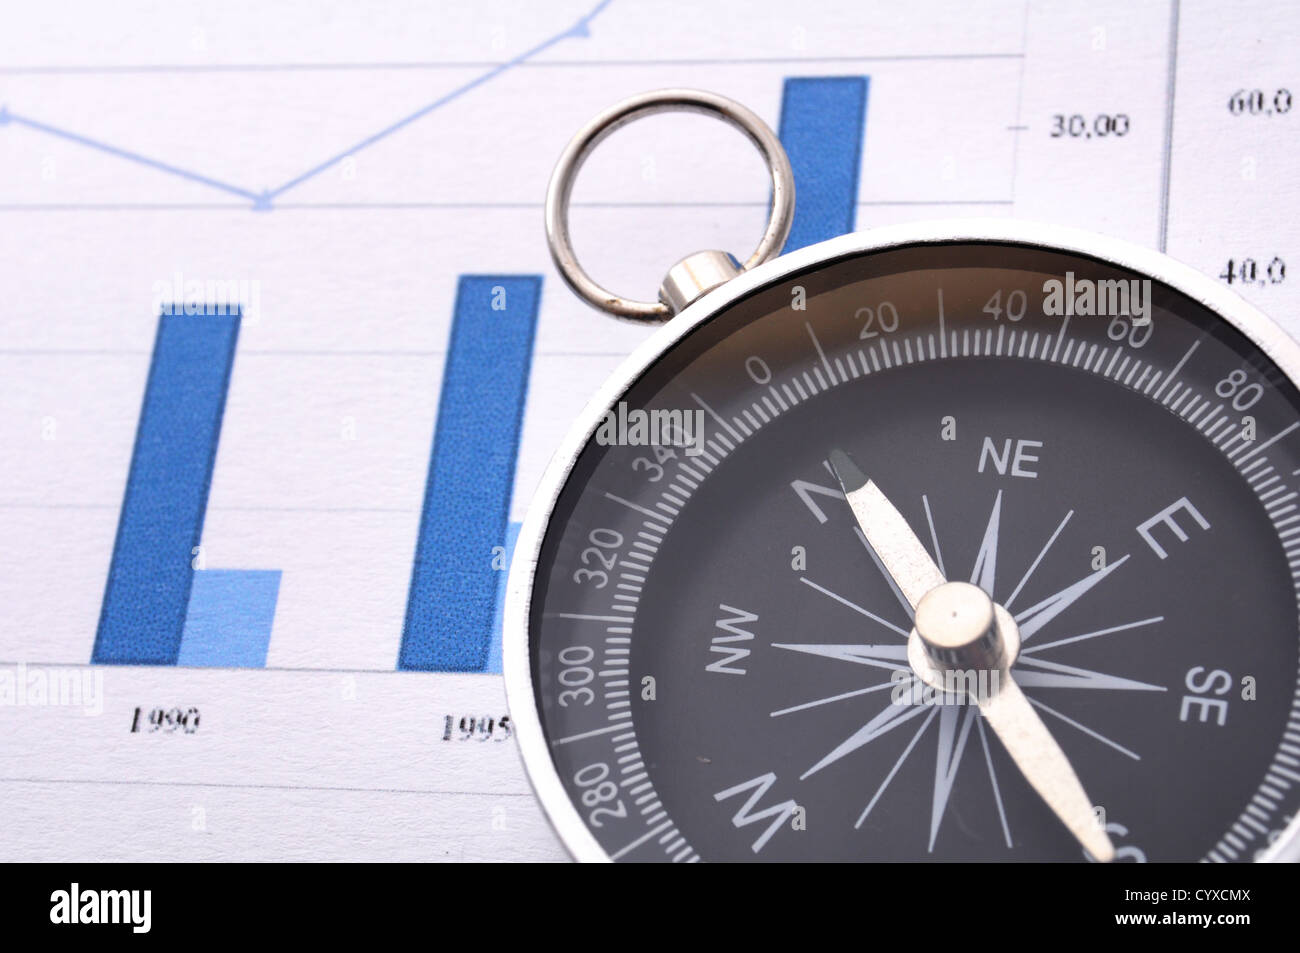 business concept with compass and diagram or chart - Stock Image